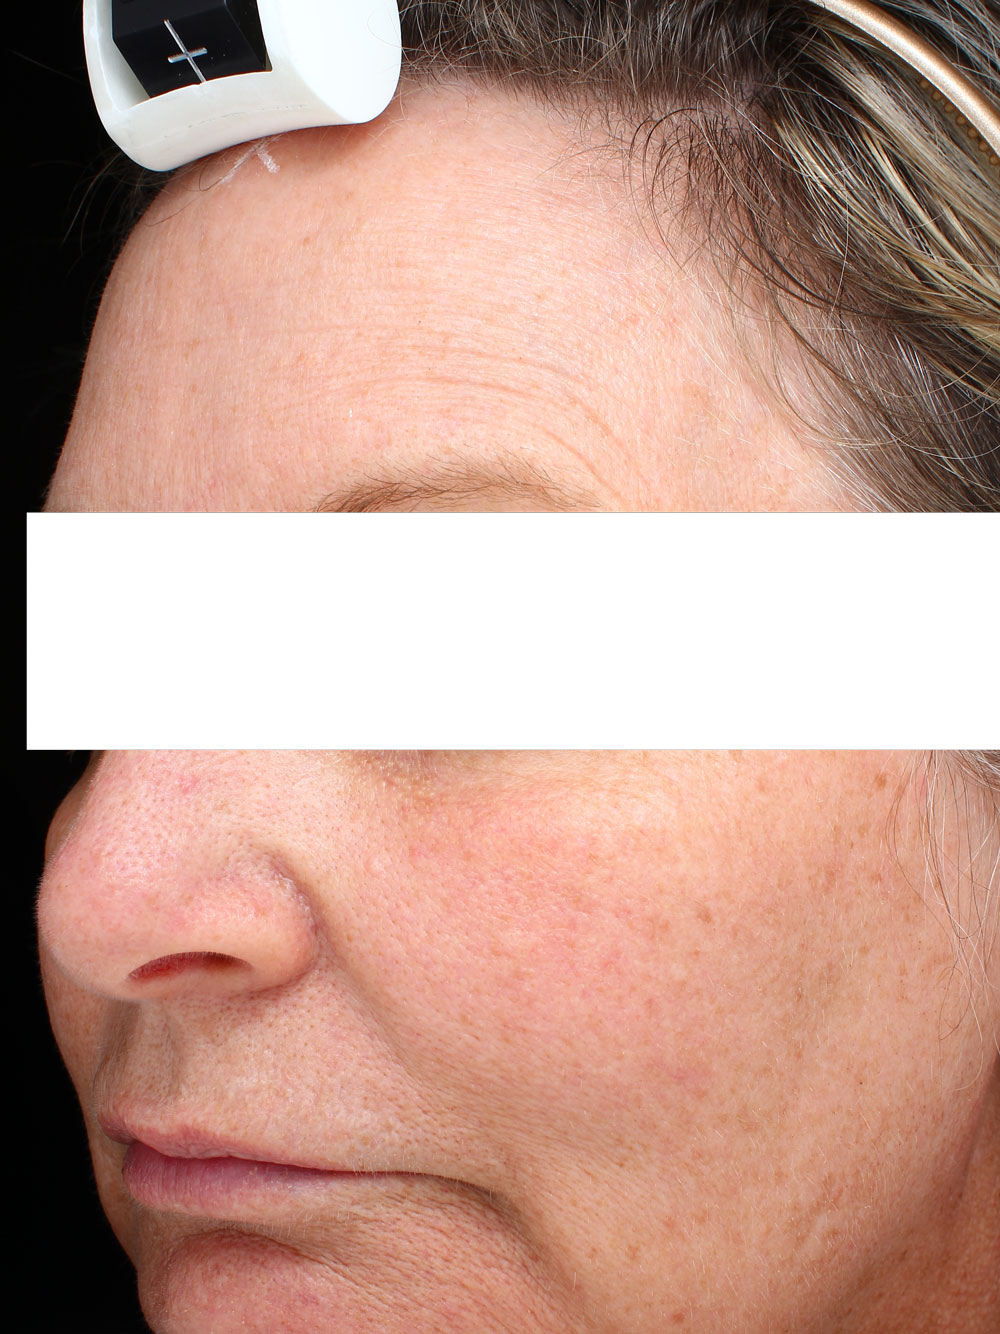 Marionette lines before from Ultherapy before and after procedure provided by Dr. Scott Hernberg of Tomorrow's Wellness Center, NJ's premier med spa.